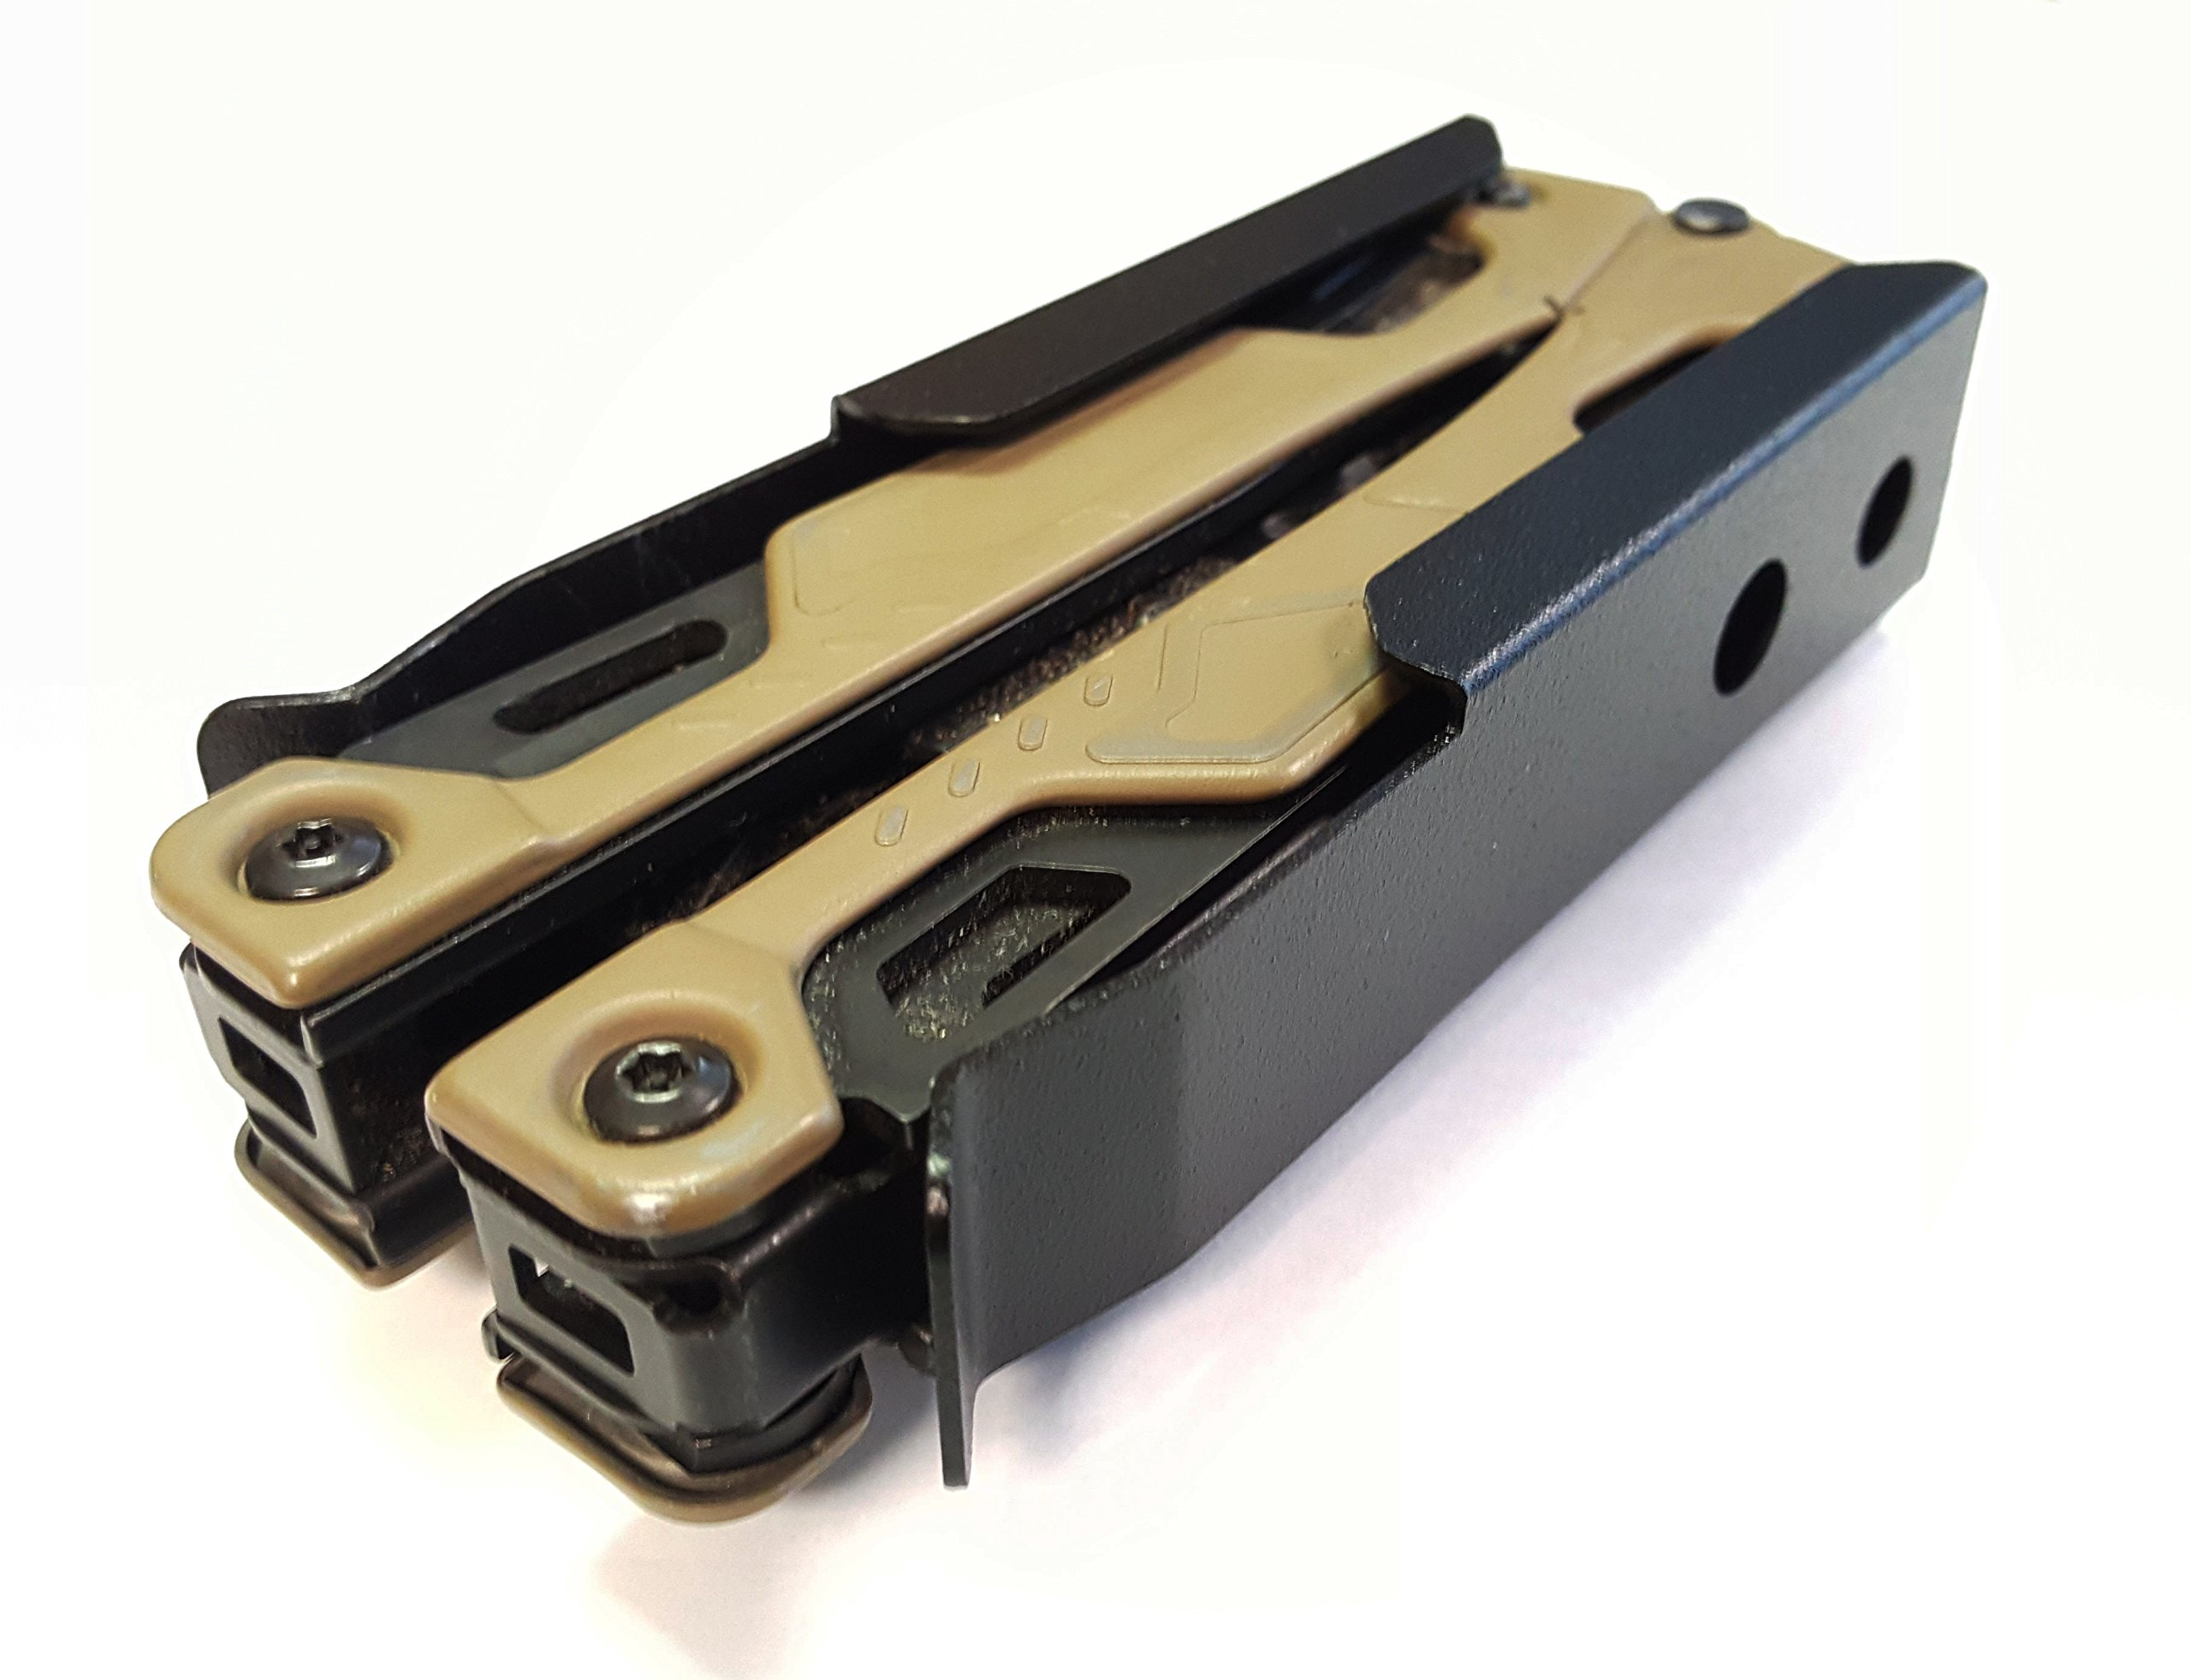 RAE GEAR OHT compatible with Leatherman sheath (2.25'' DUTY BELT CLIP)